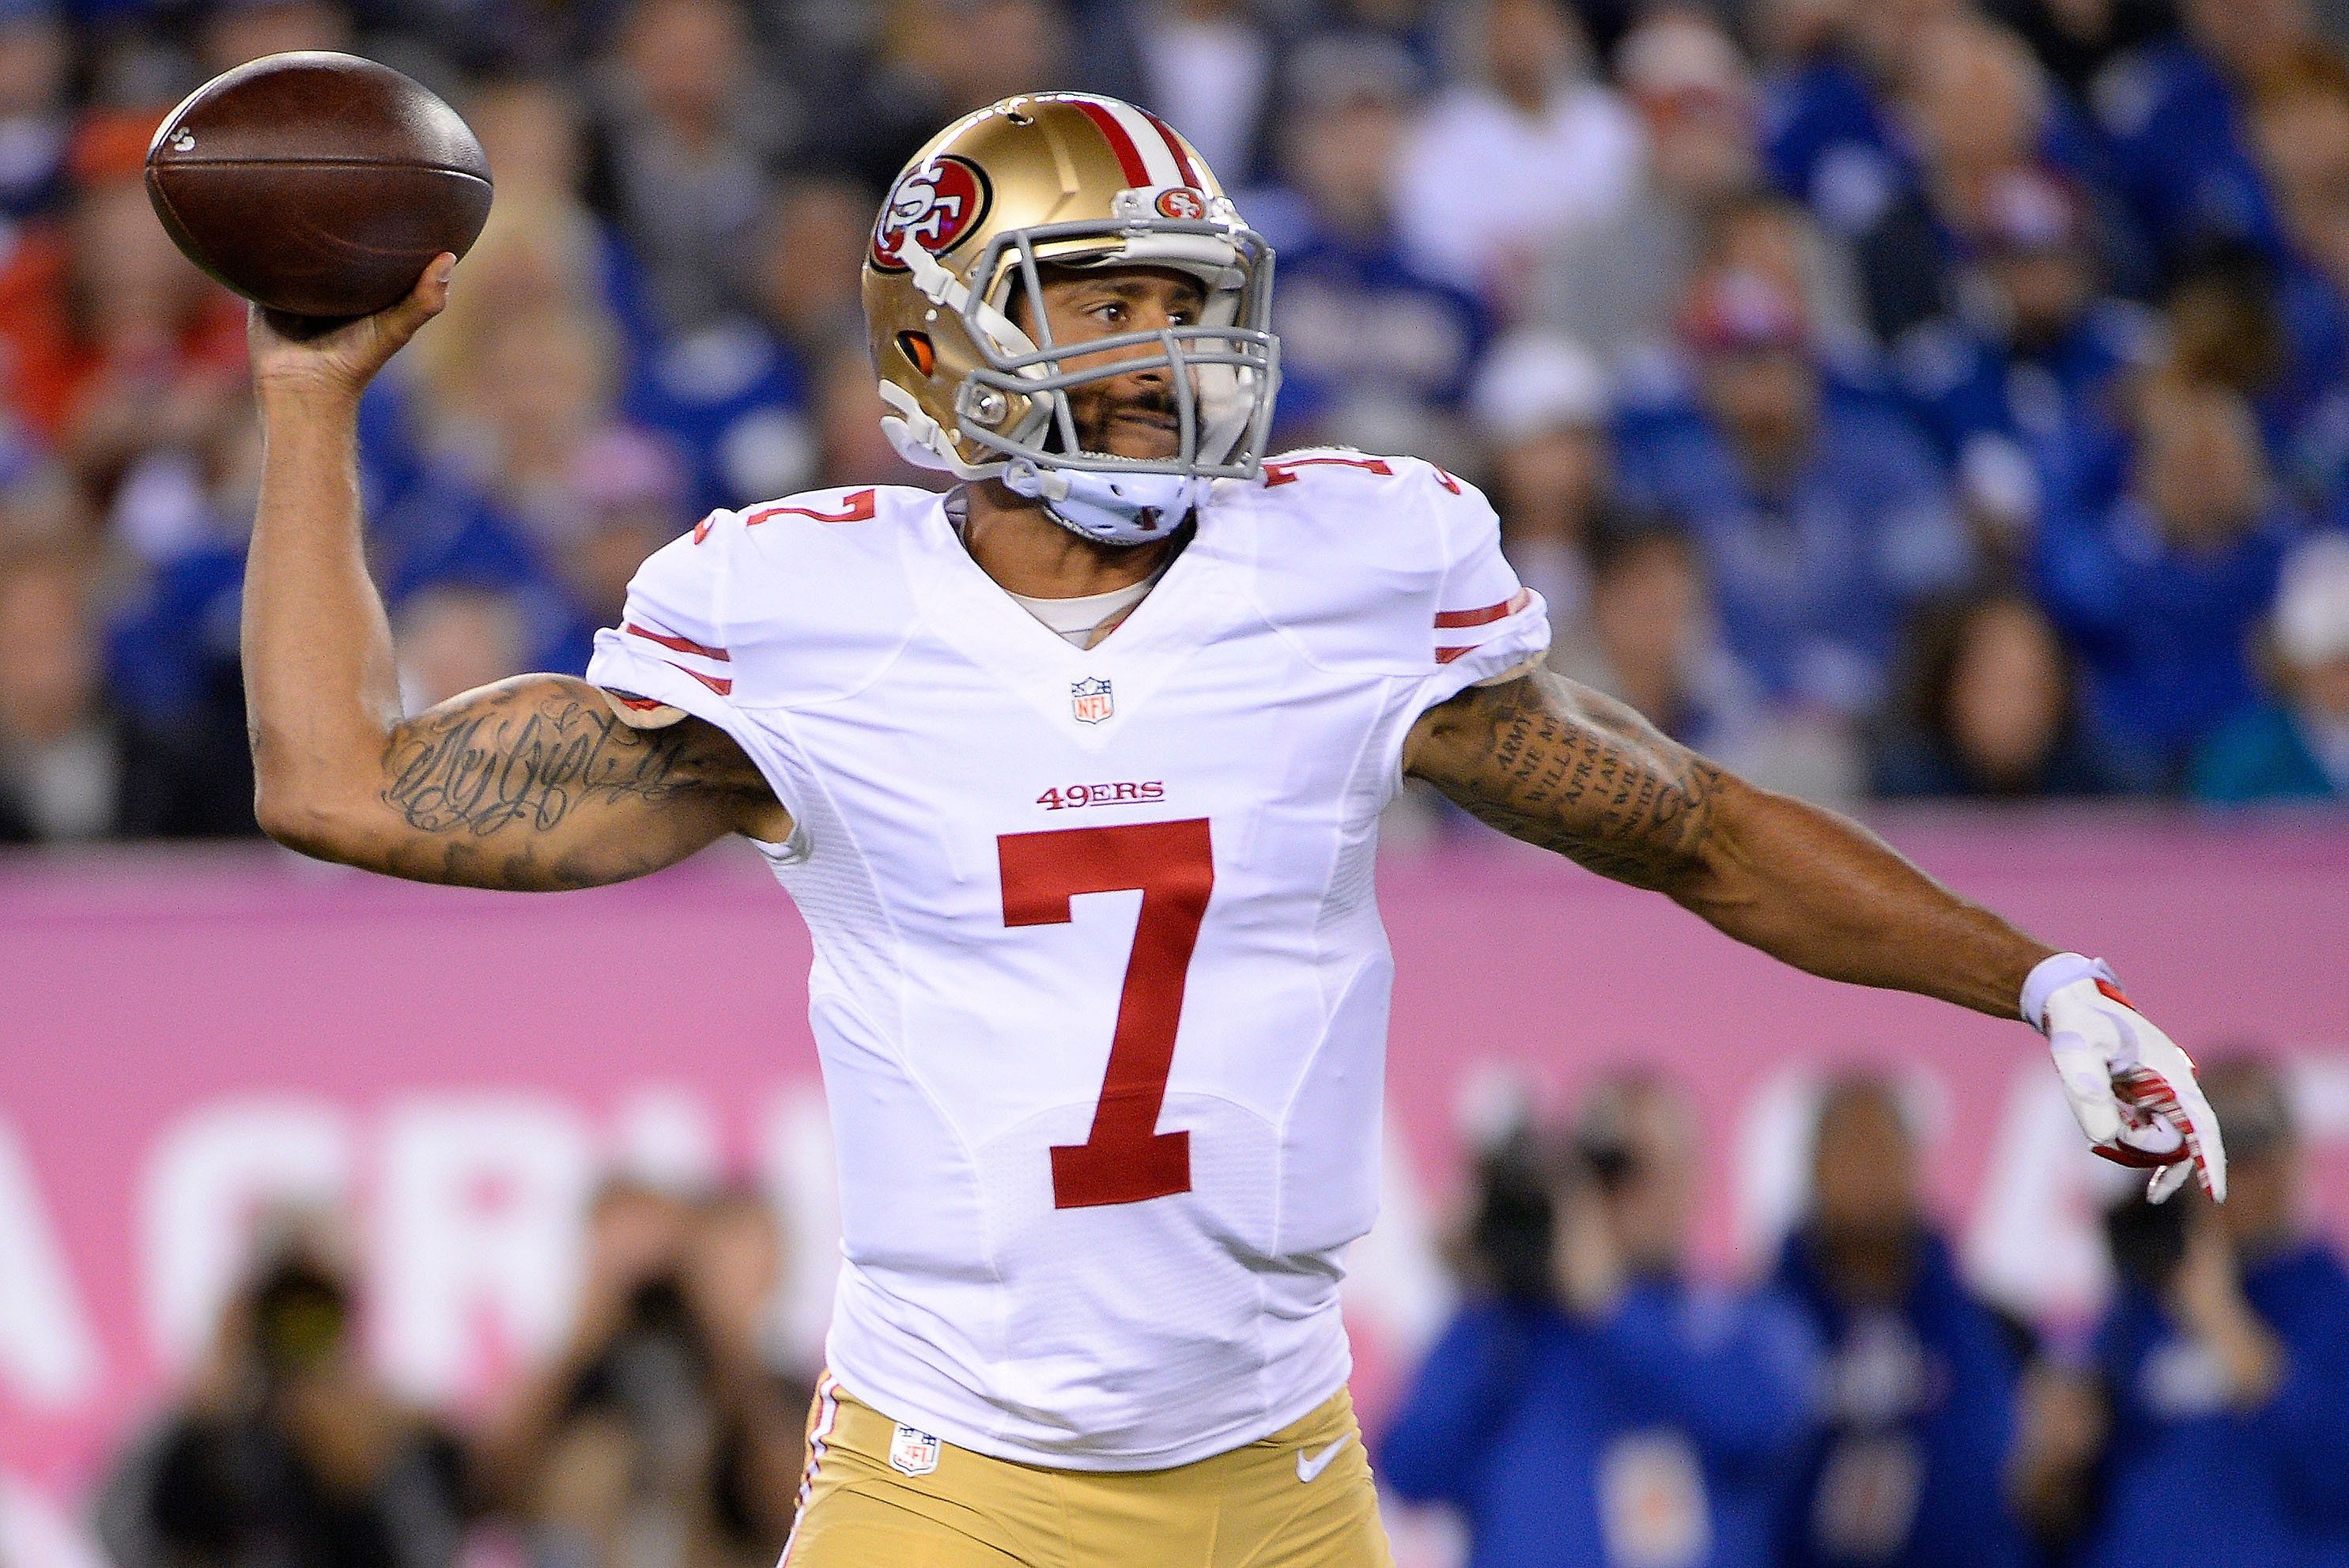 Oct 11, 2015; East Rutherford, NJ, USA; San Francisco 49ers quarterback Colin Kaepernick (7) throws the ball against the New York Giants in the second quarter at MetLife Stadium. Mandatory Credit: Robert Deutsch-USA TODAY Sports